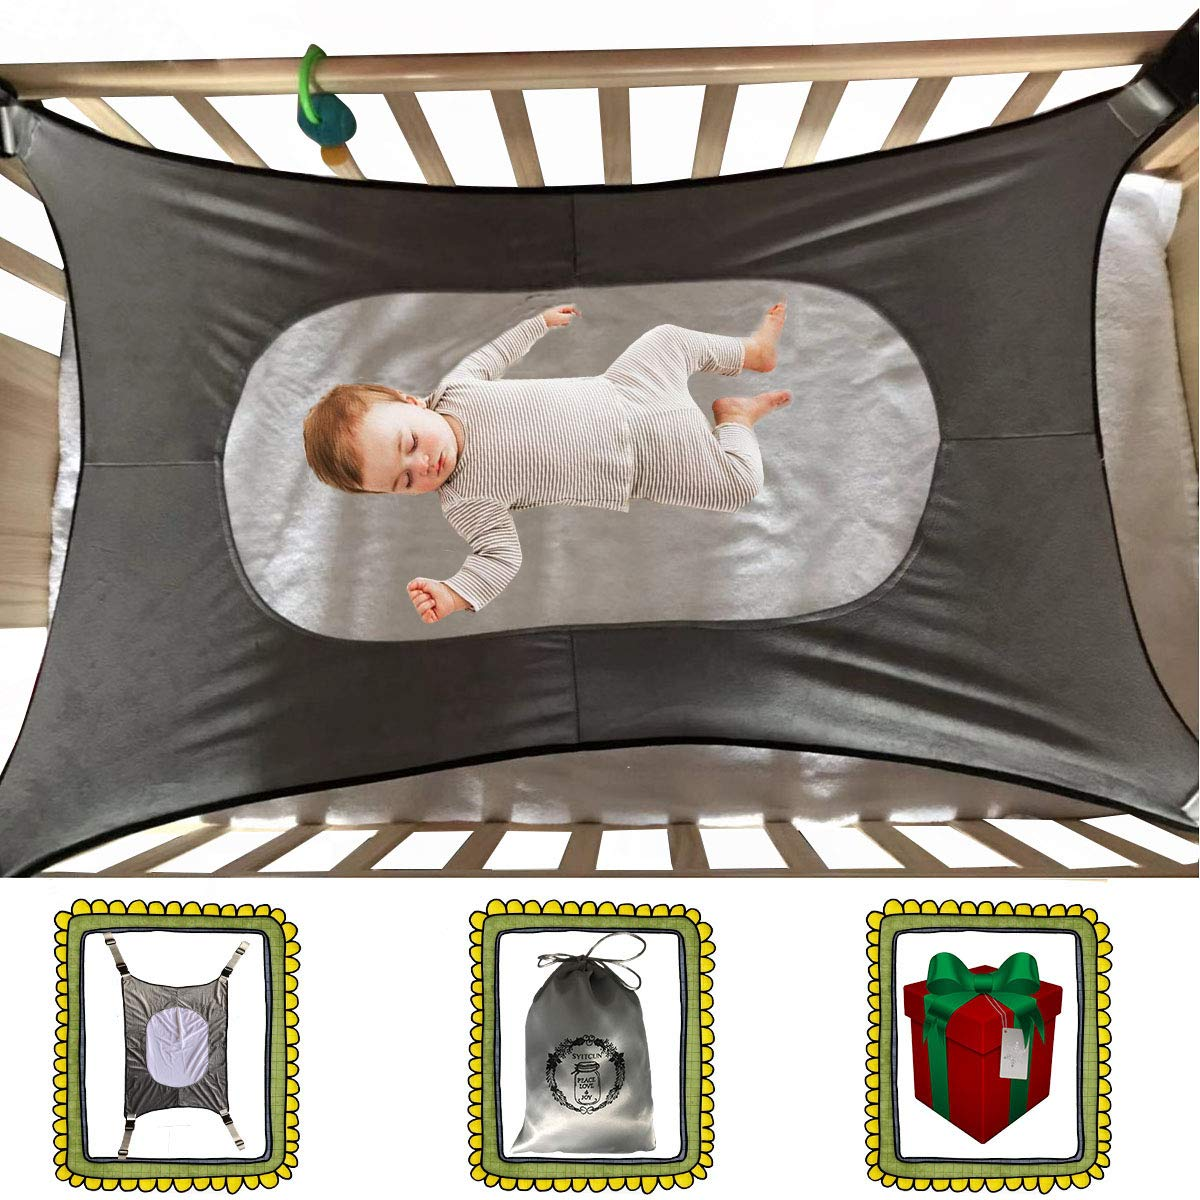 Baby Hammock for Crib,Mimics Womb,Newborn Bassinet,Strong Material,Upgraded Safety Measures,Infant Nursey Travel Bed, Reduce Environmental Risks Associated with Early Infancy Absolute Safe Shower Gift